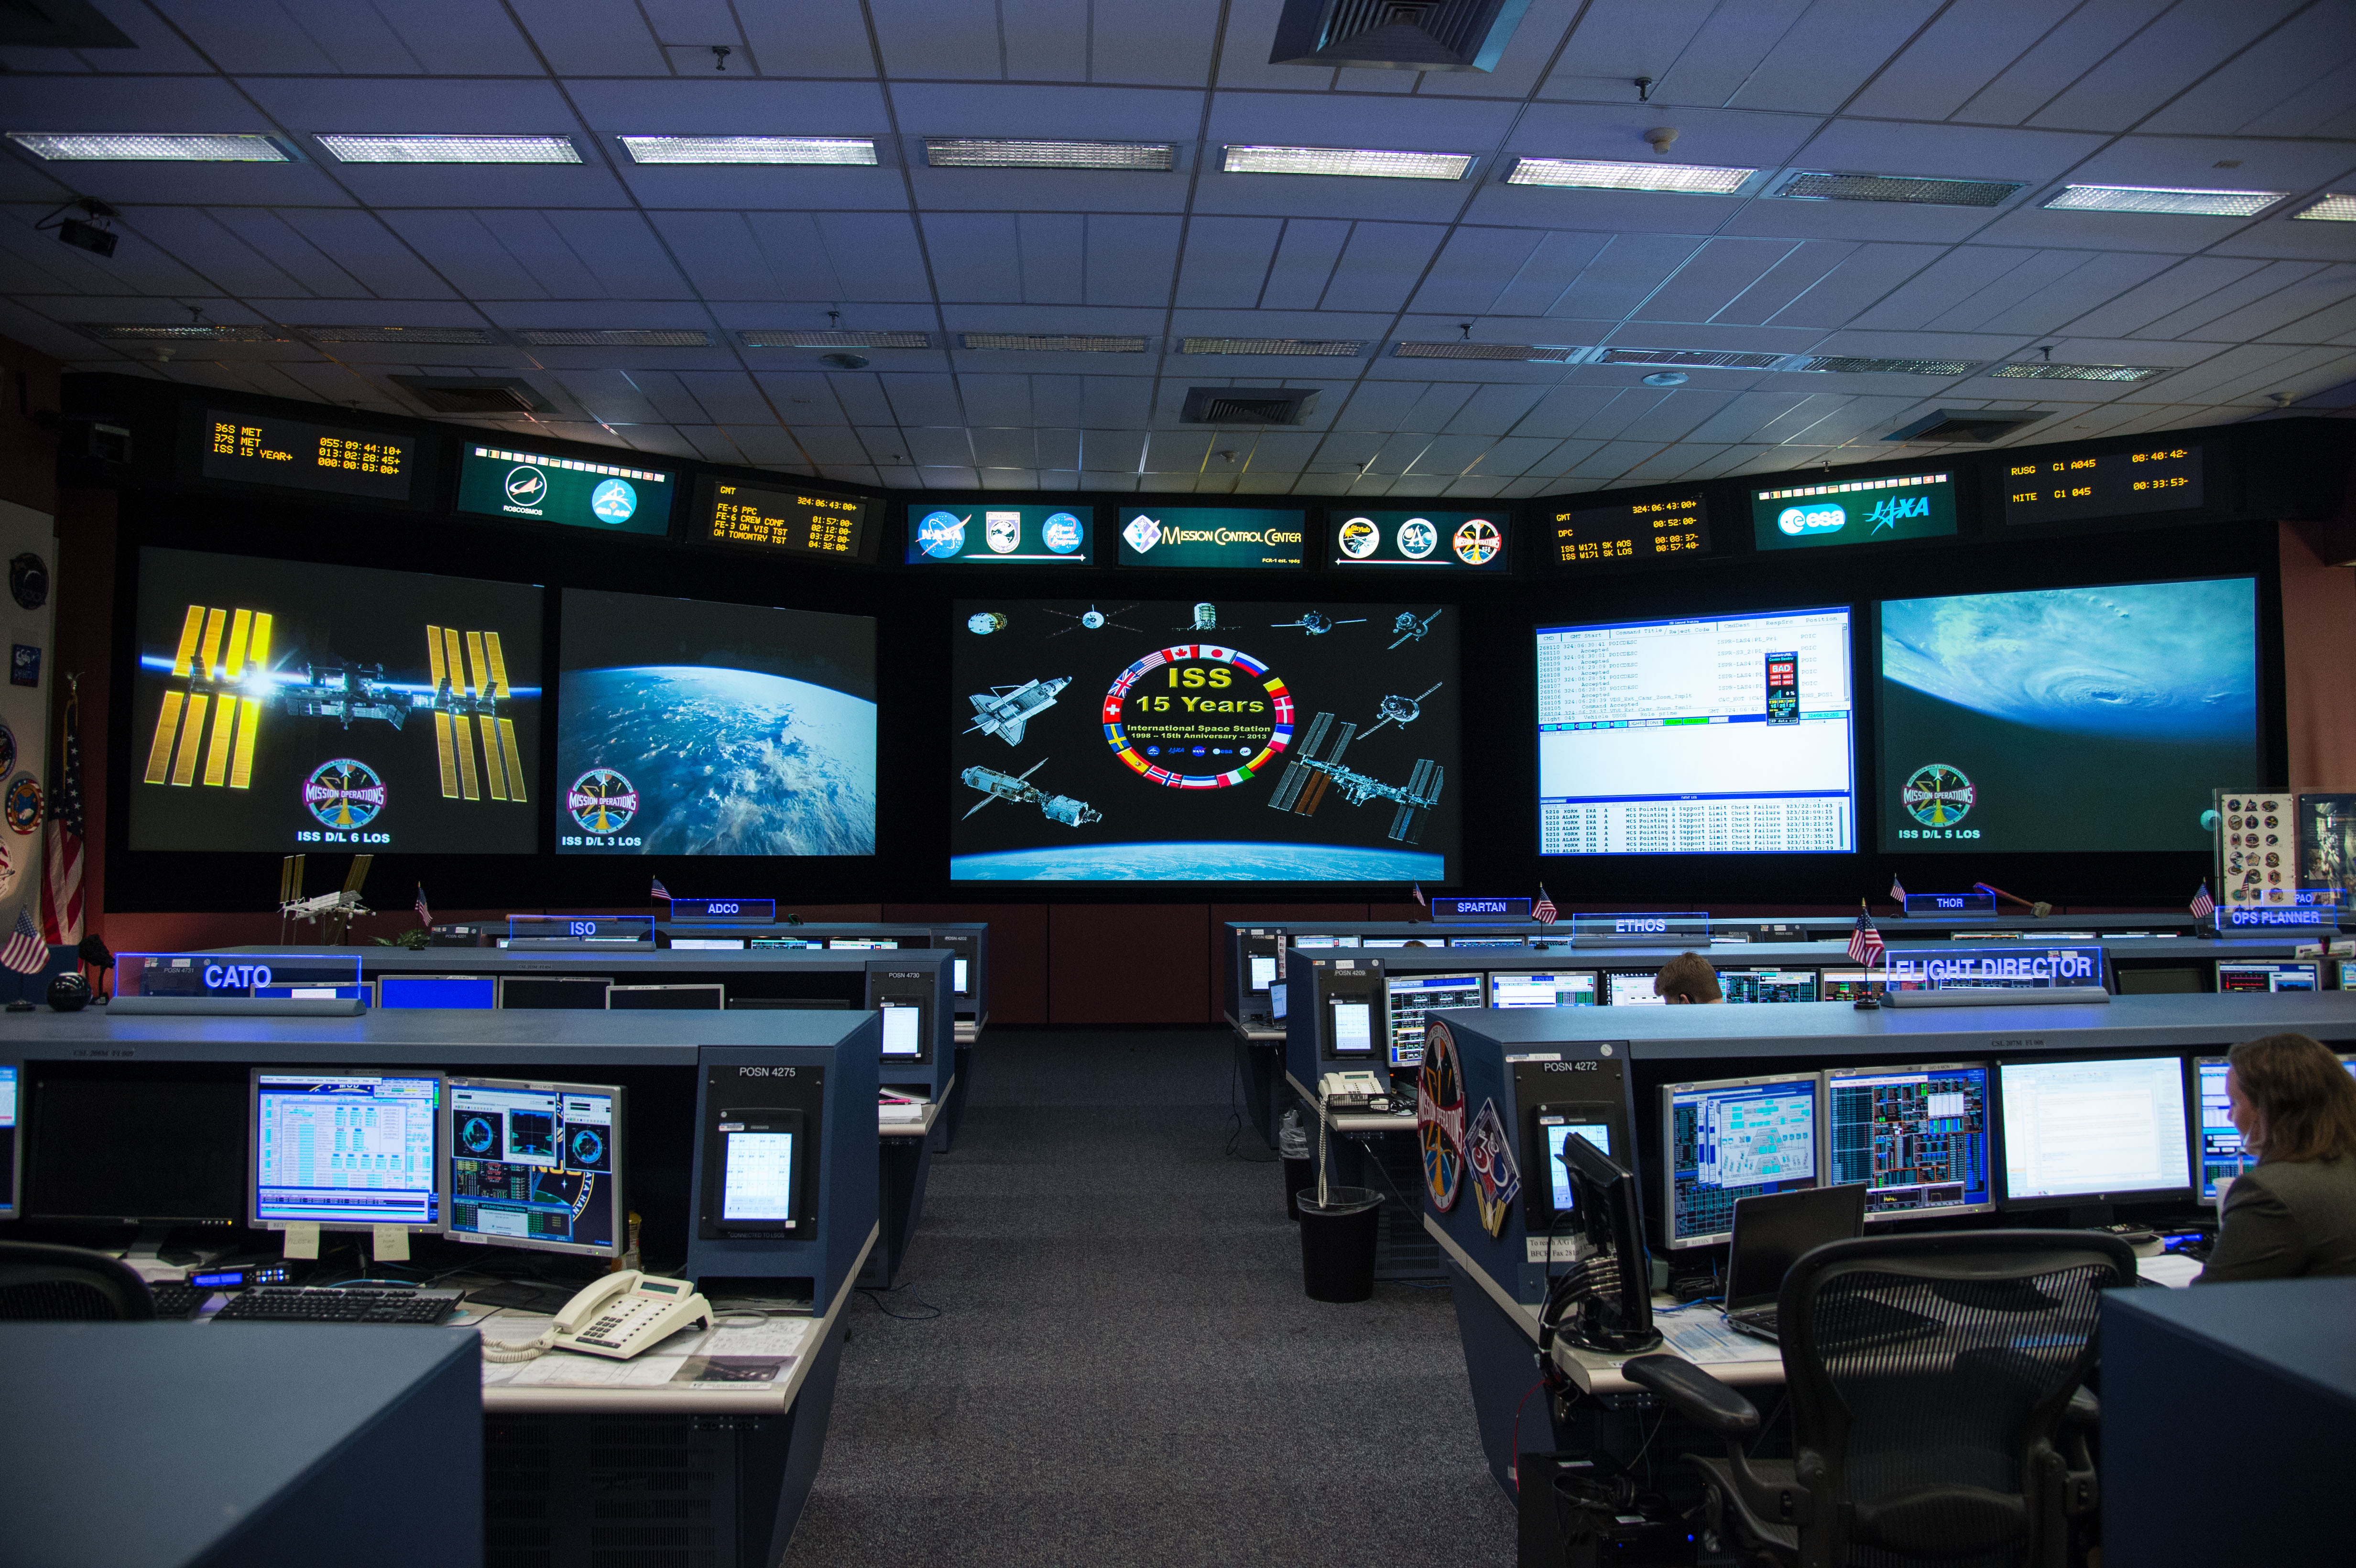 houston space station controls - photo #6